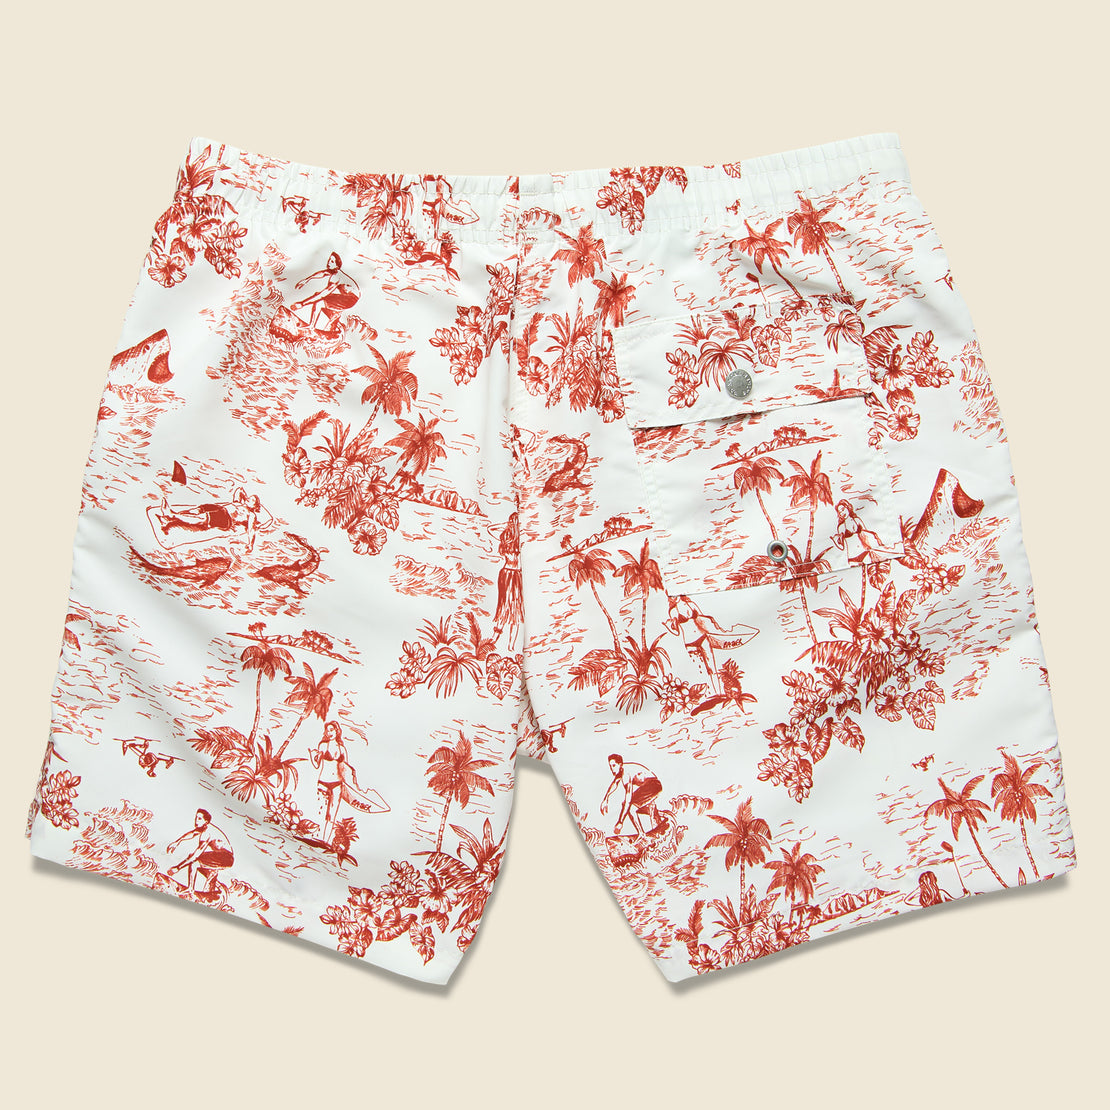 Canadian Toile Swim Trunk - Red/White